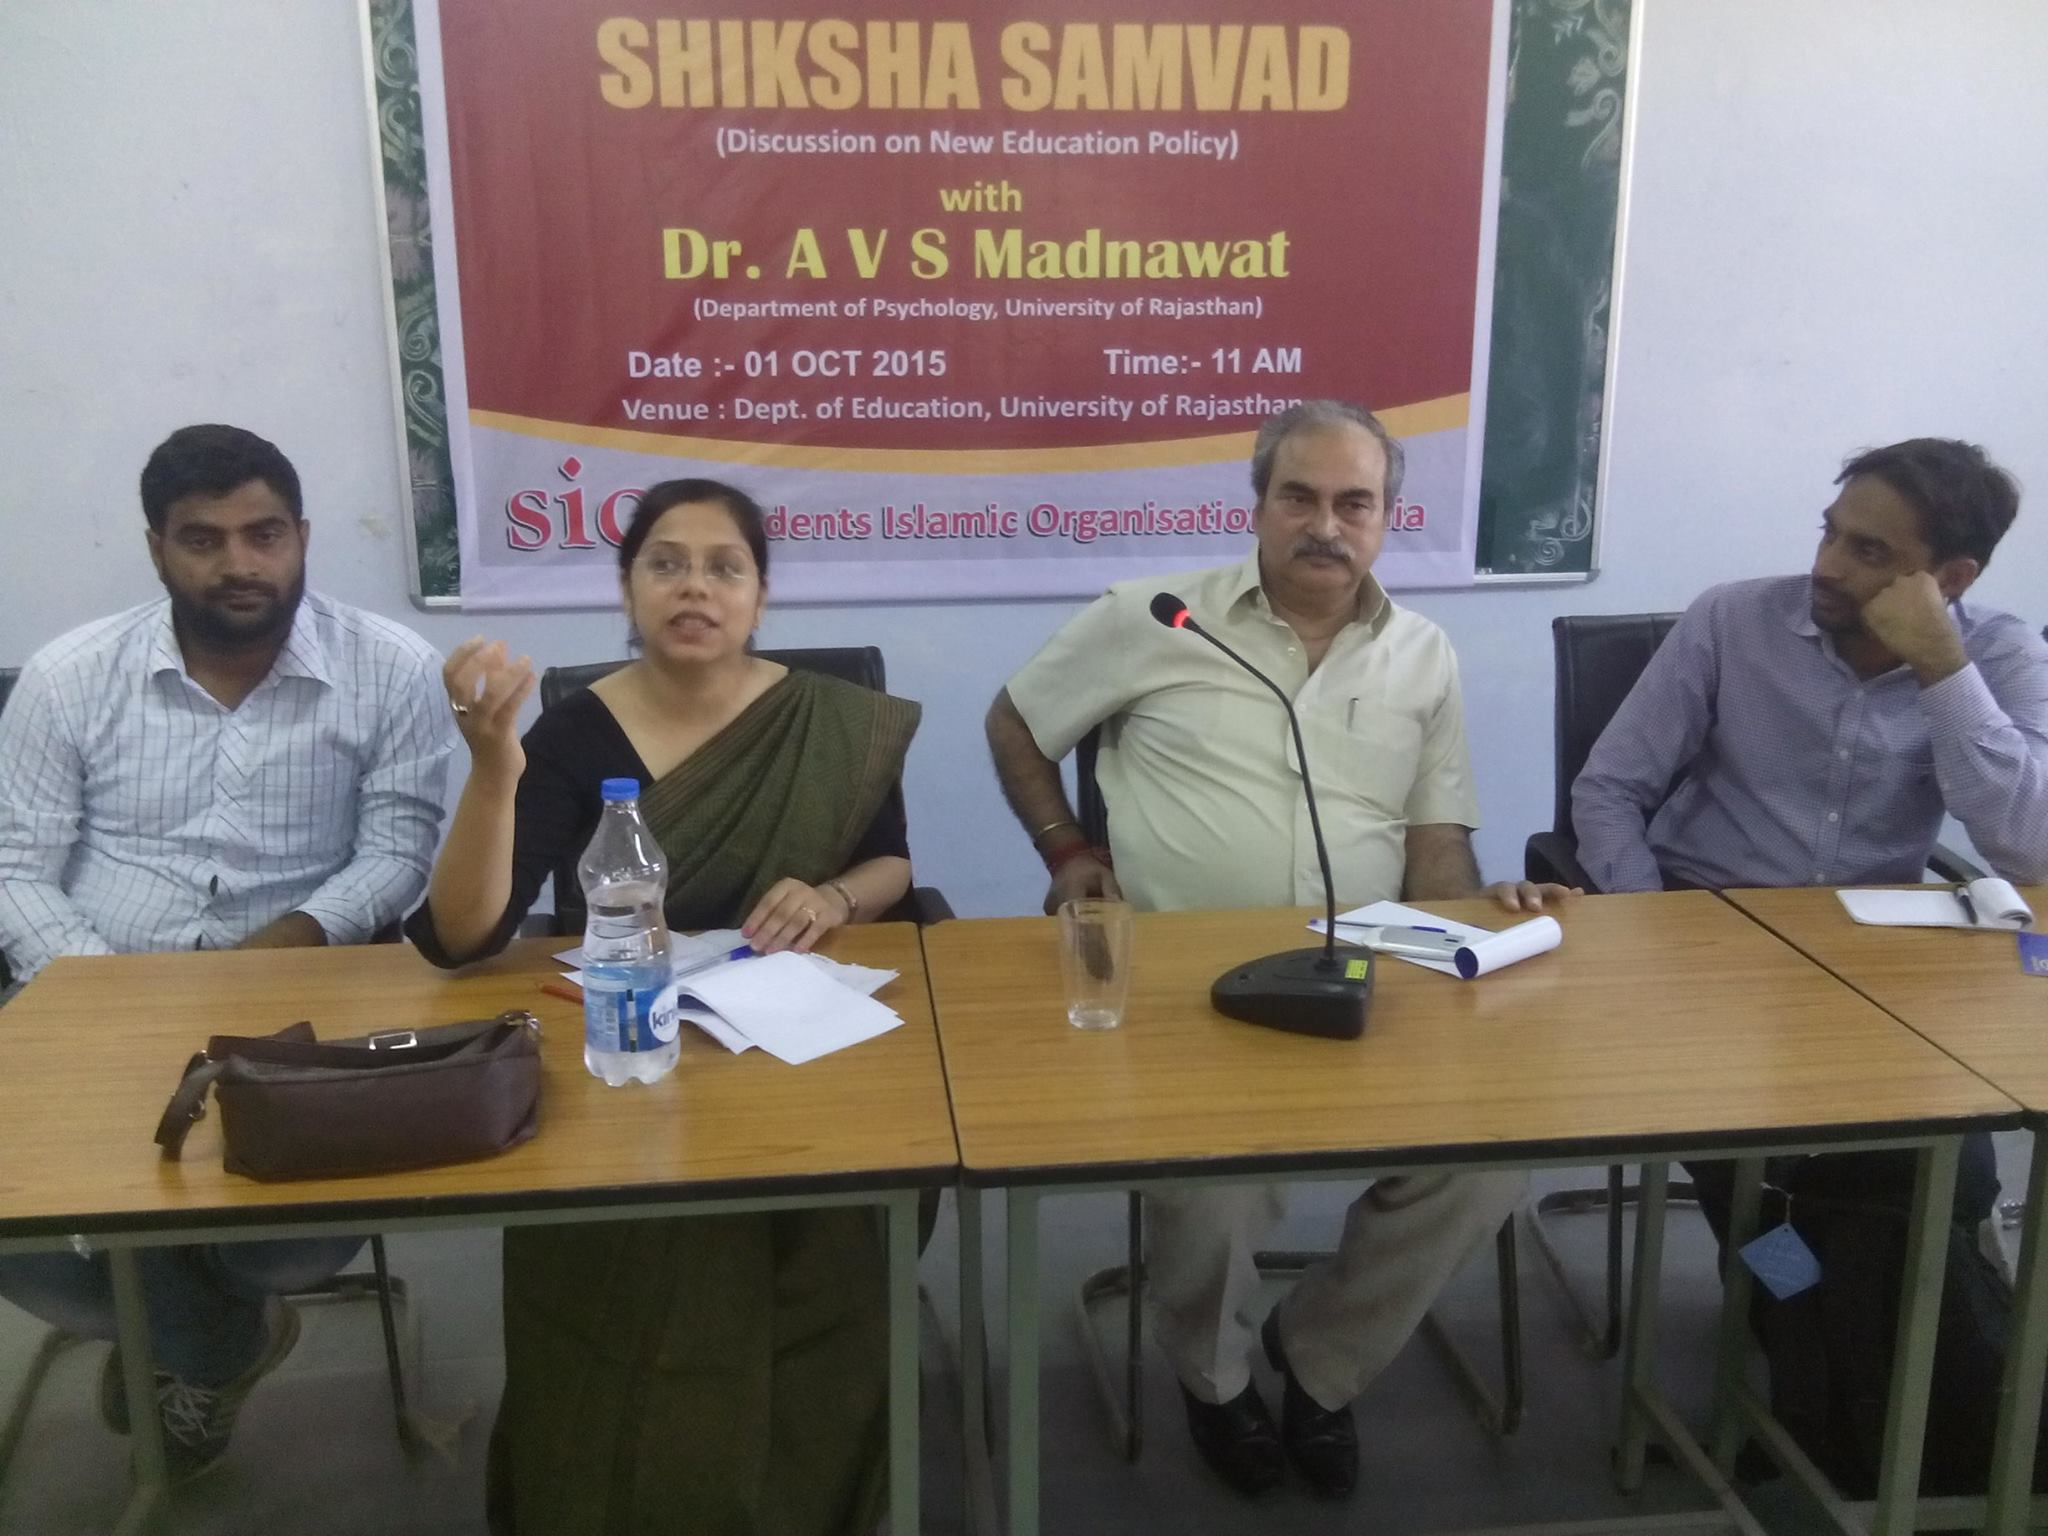 SHIKSHA SAMVAD at University of Rajasthan